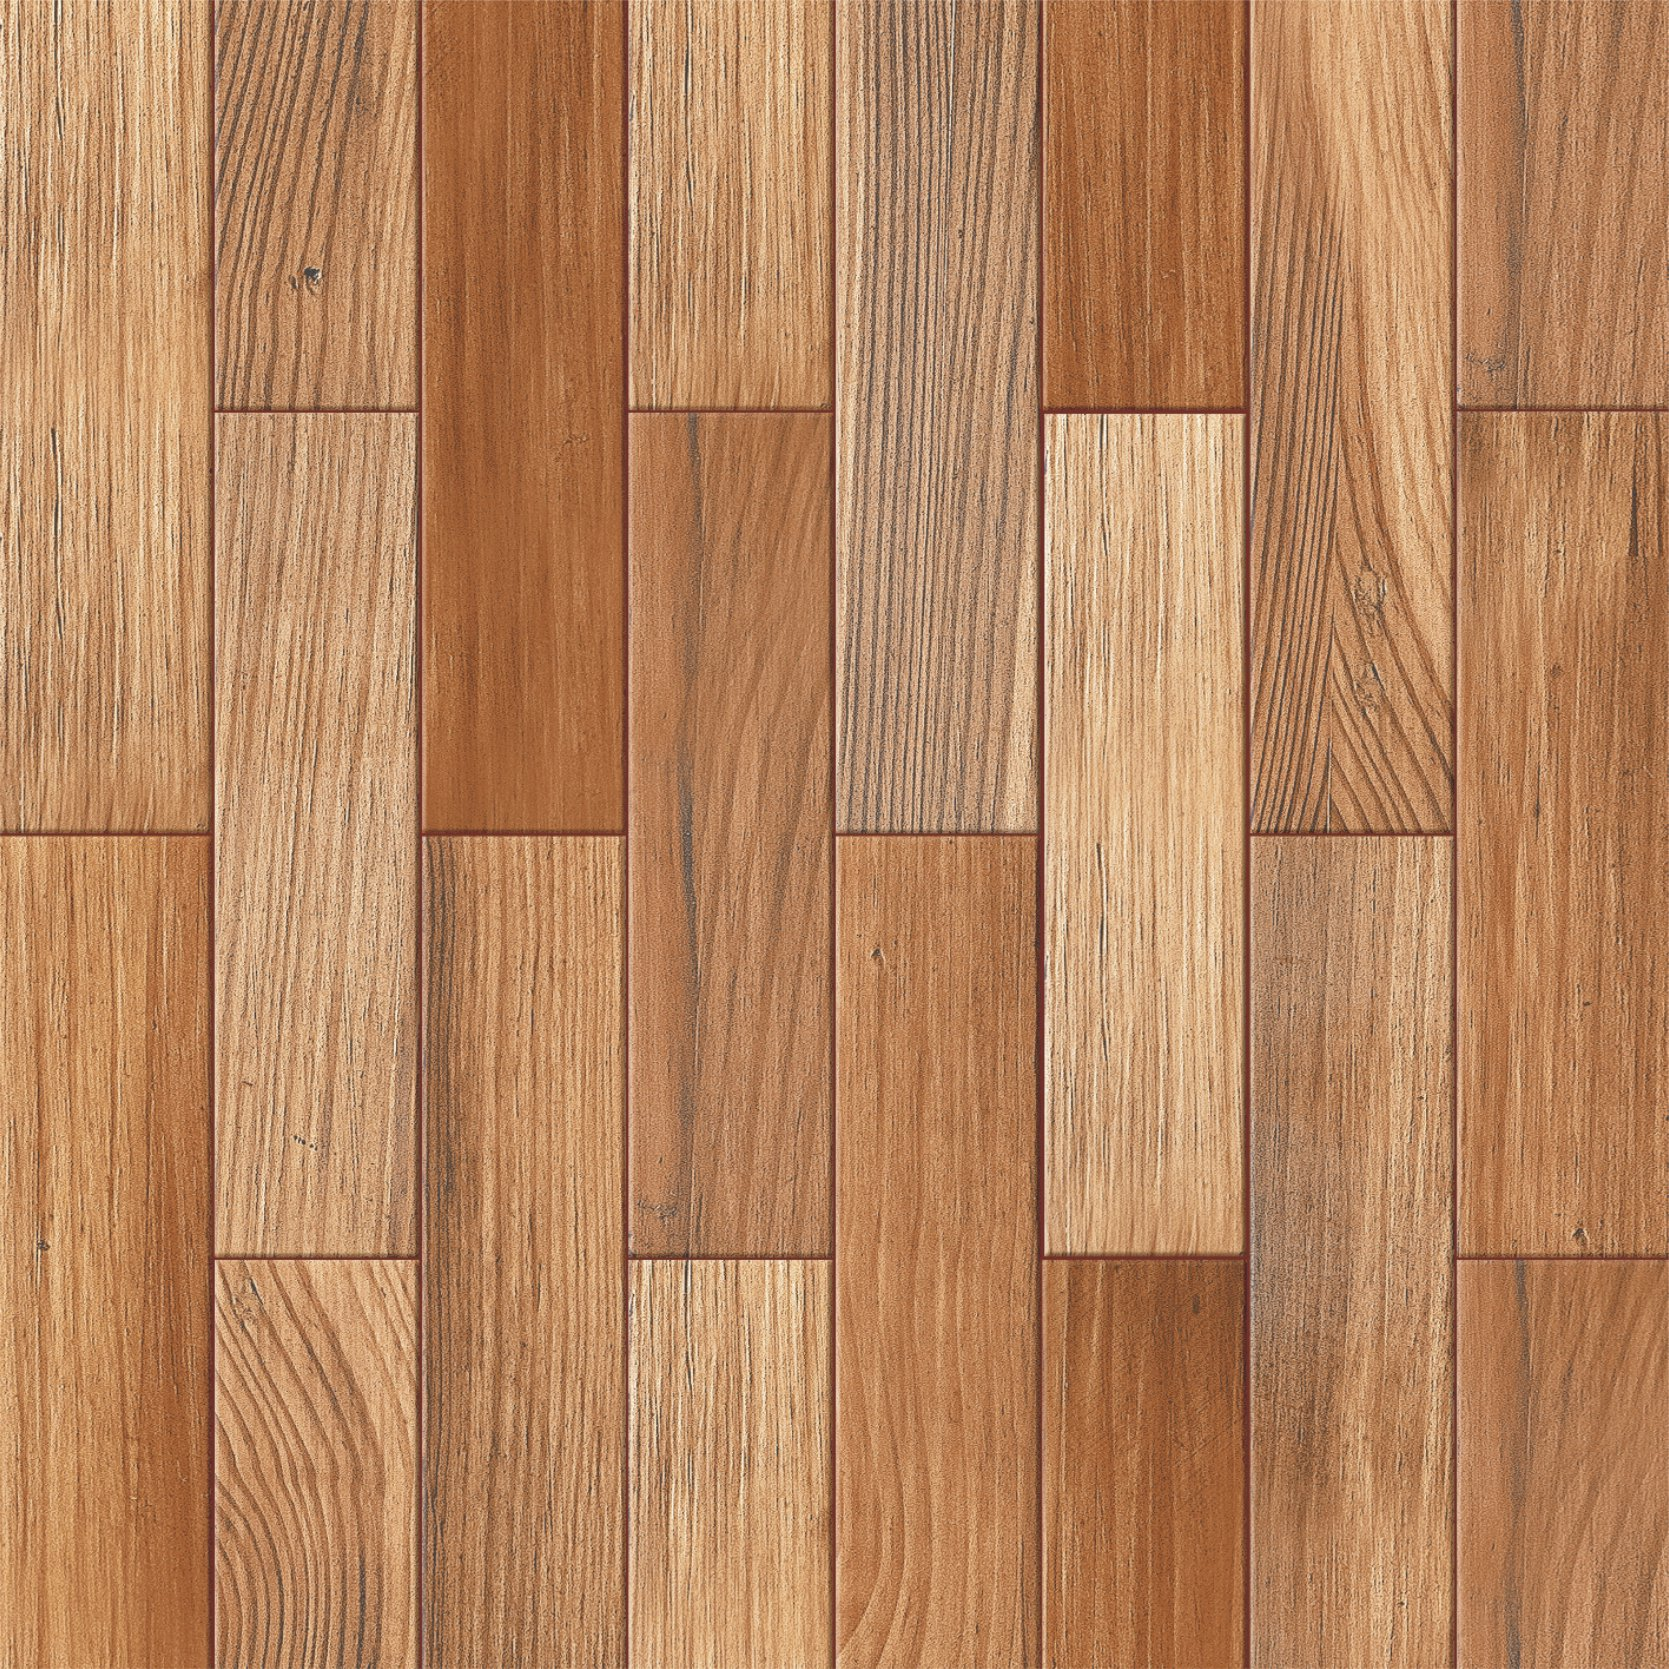 600mmx600mm Wood Floor Tiles 4509 Wall Tiles Floor Tiles